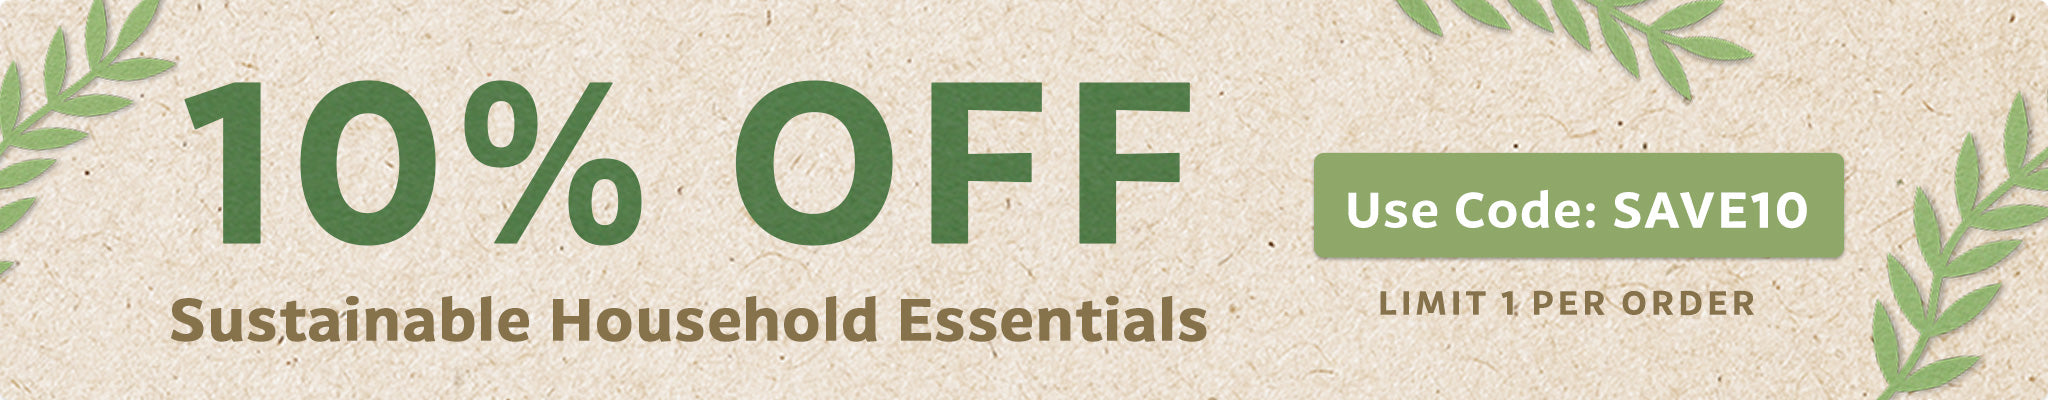 Get 10% Off Sustainable Household Essentials | Use Code SAVE10 at checkout